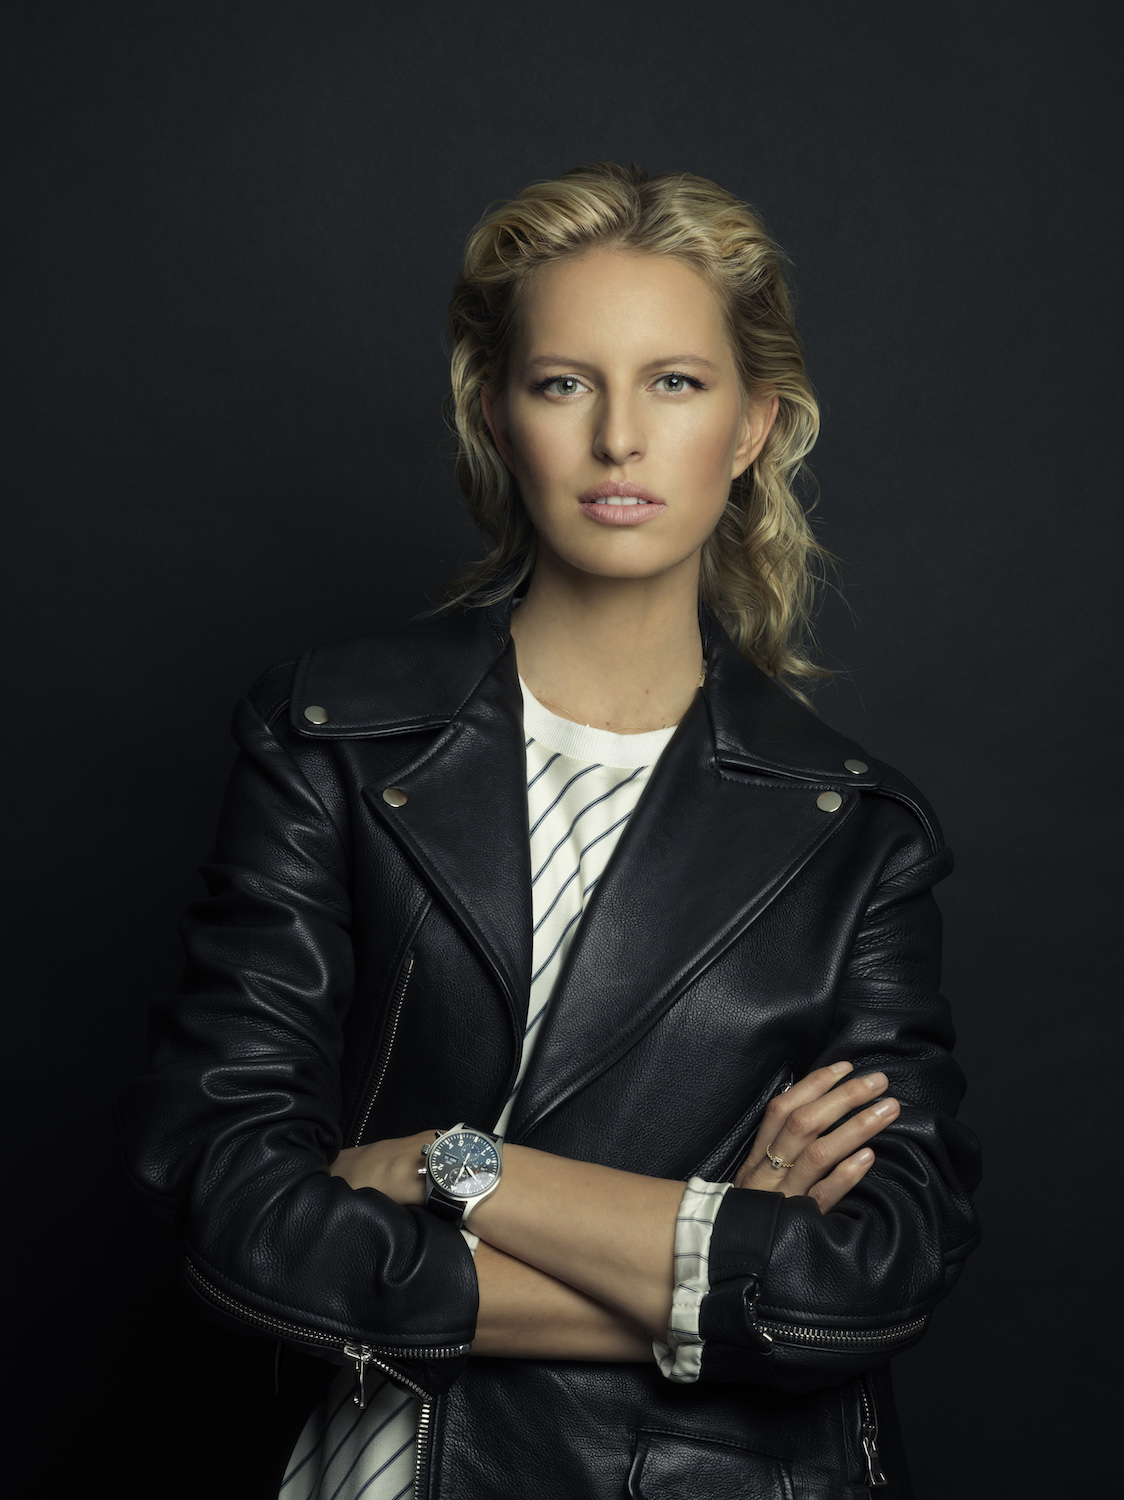 Karolina Kurkova for IWC watches